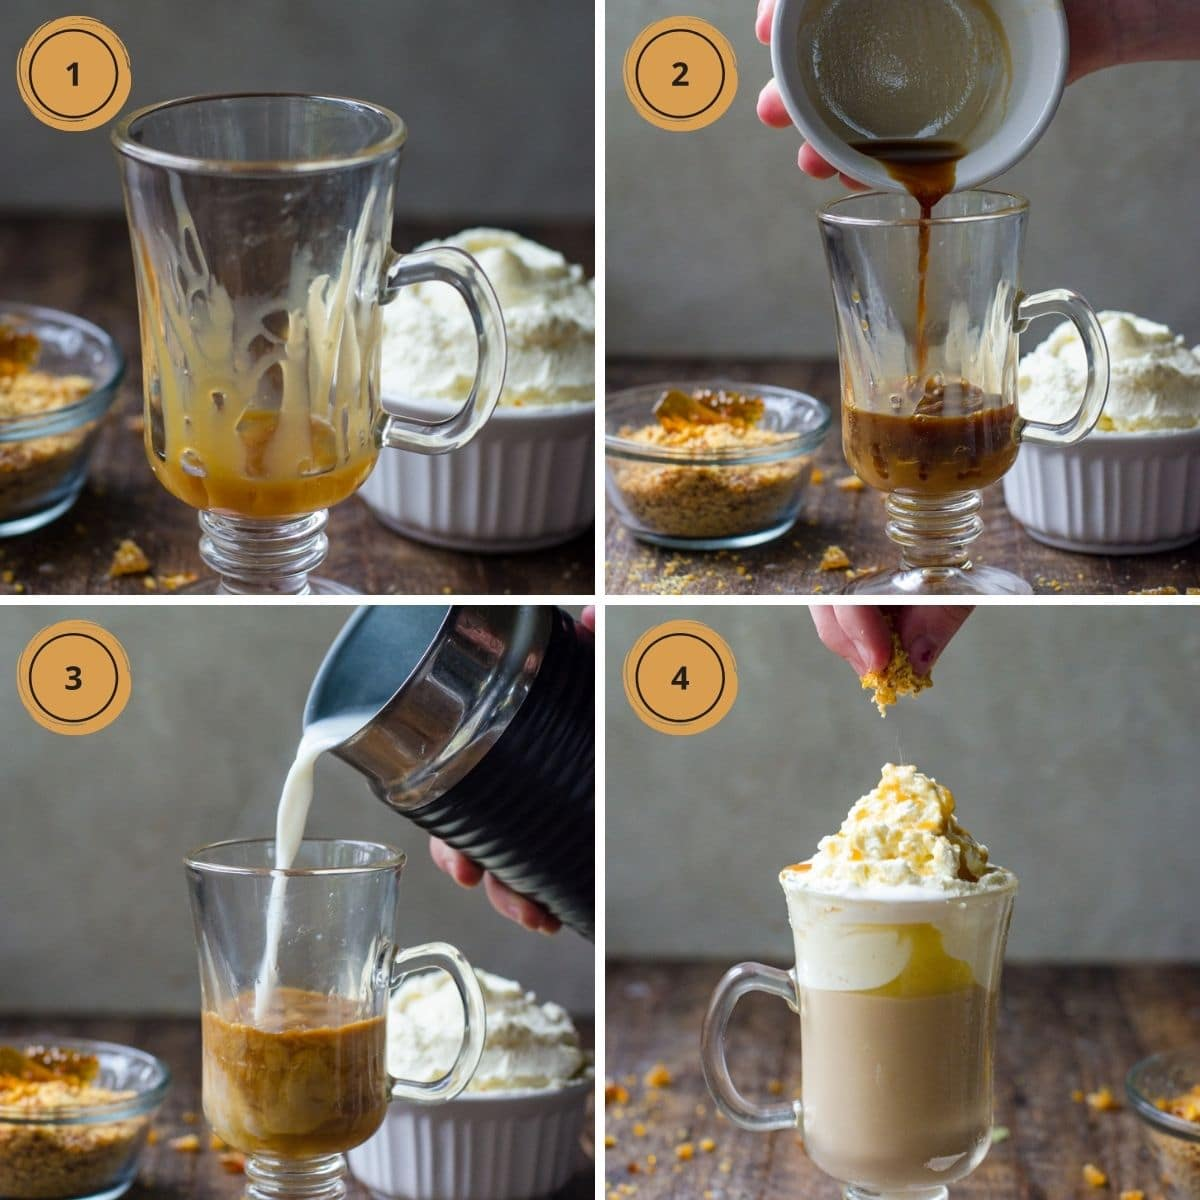 Four steps showing how to make homemade caramel brulee latte.